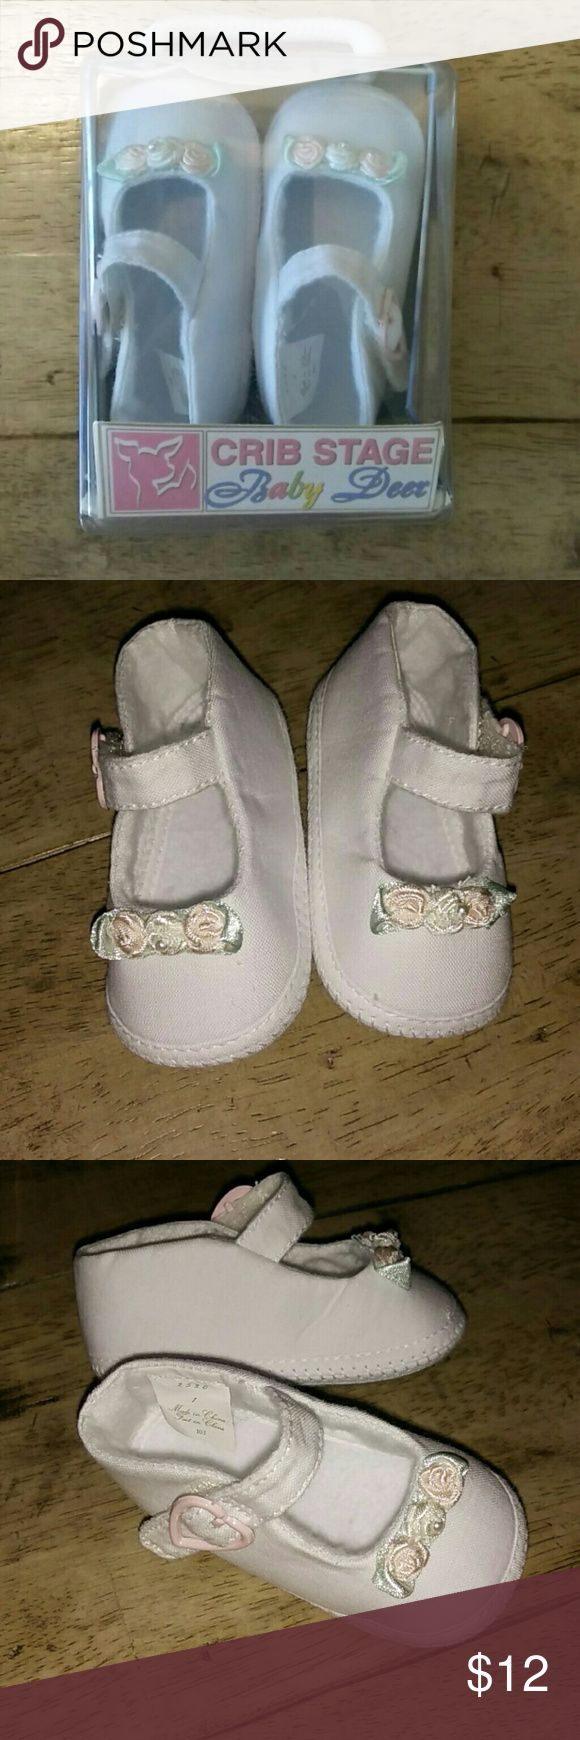 Excellent Condition! Adorable White Baby Shoes * Never been worn, In Excellent Condition with box * Baby Deer Crib Stage 1, Ages 6 wks - 3 mos * Soft White canvas with 3 flower rosettes on top * Velcro strap and cute light pink faux heart buckle Baby Deer Shoes Baby & Walker